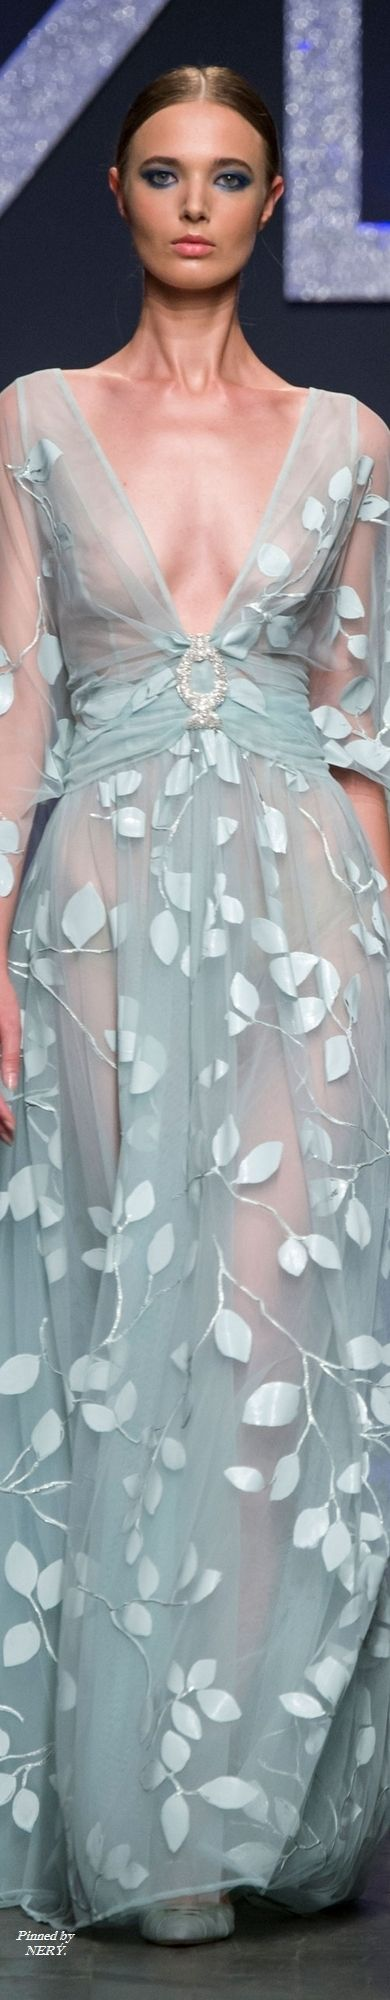 Renato Balestra Fall 2016 Couture                              …